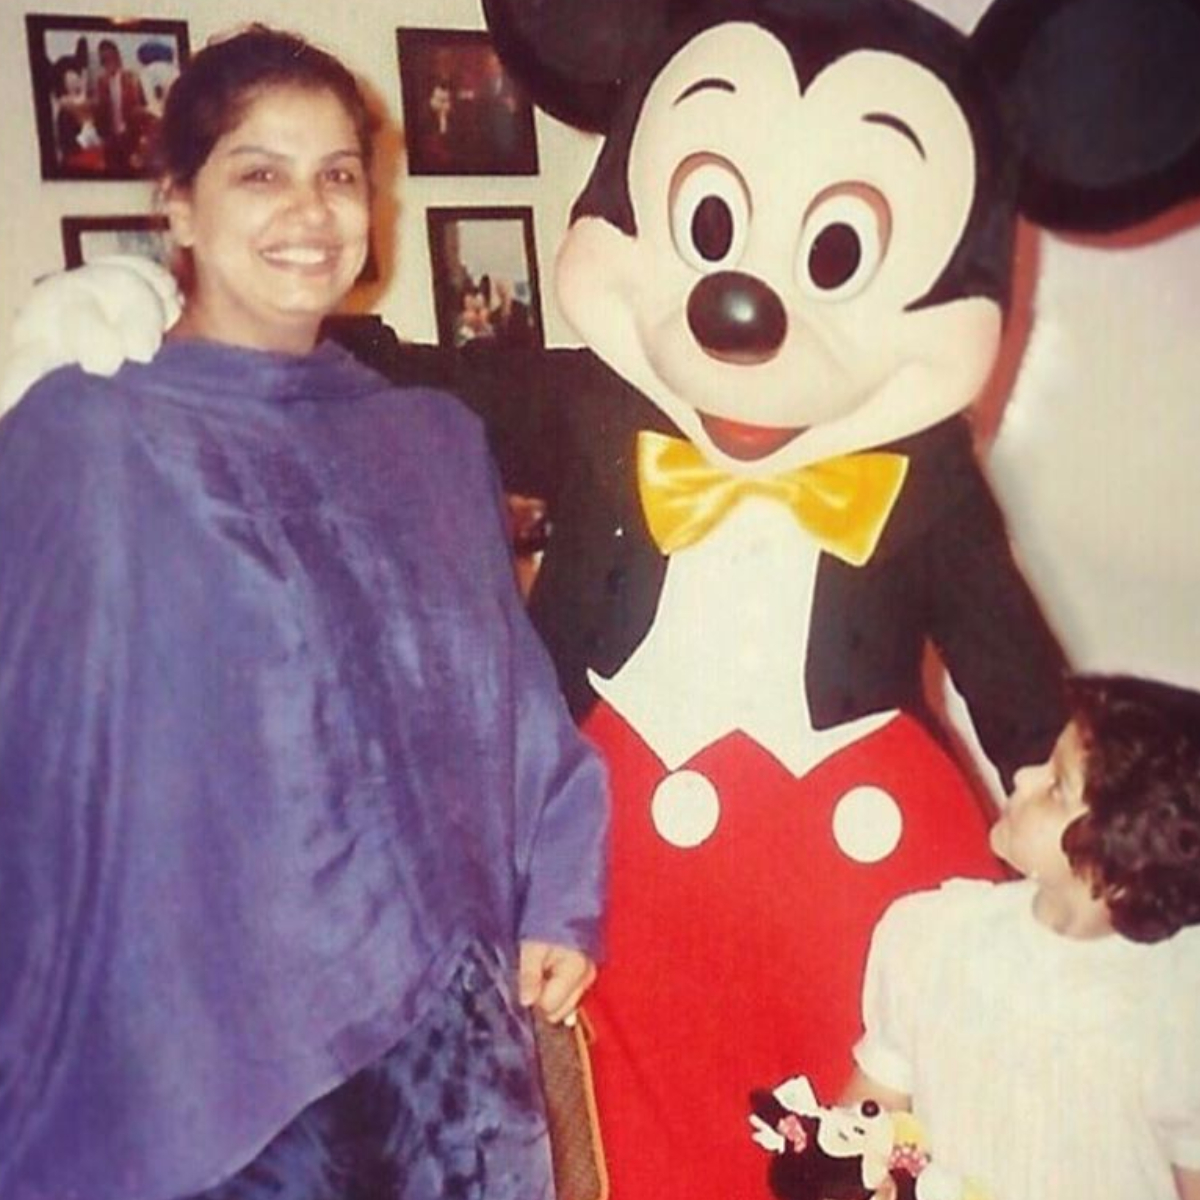 Arjun Kapoor's sister Anshula shares an adorable throwback picture with mom Mona Kapoor; Says 'Miss you Ma'